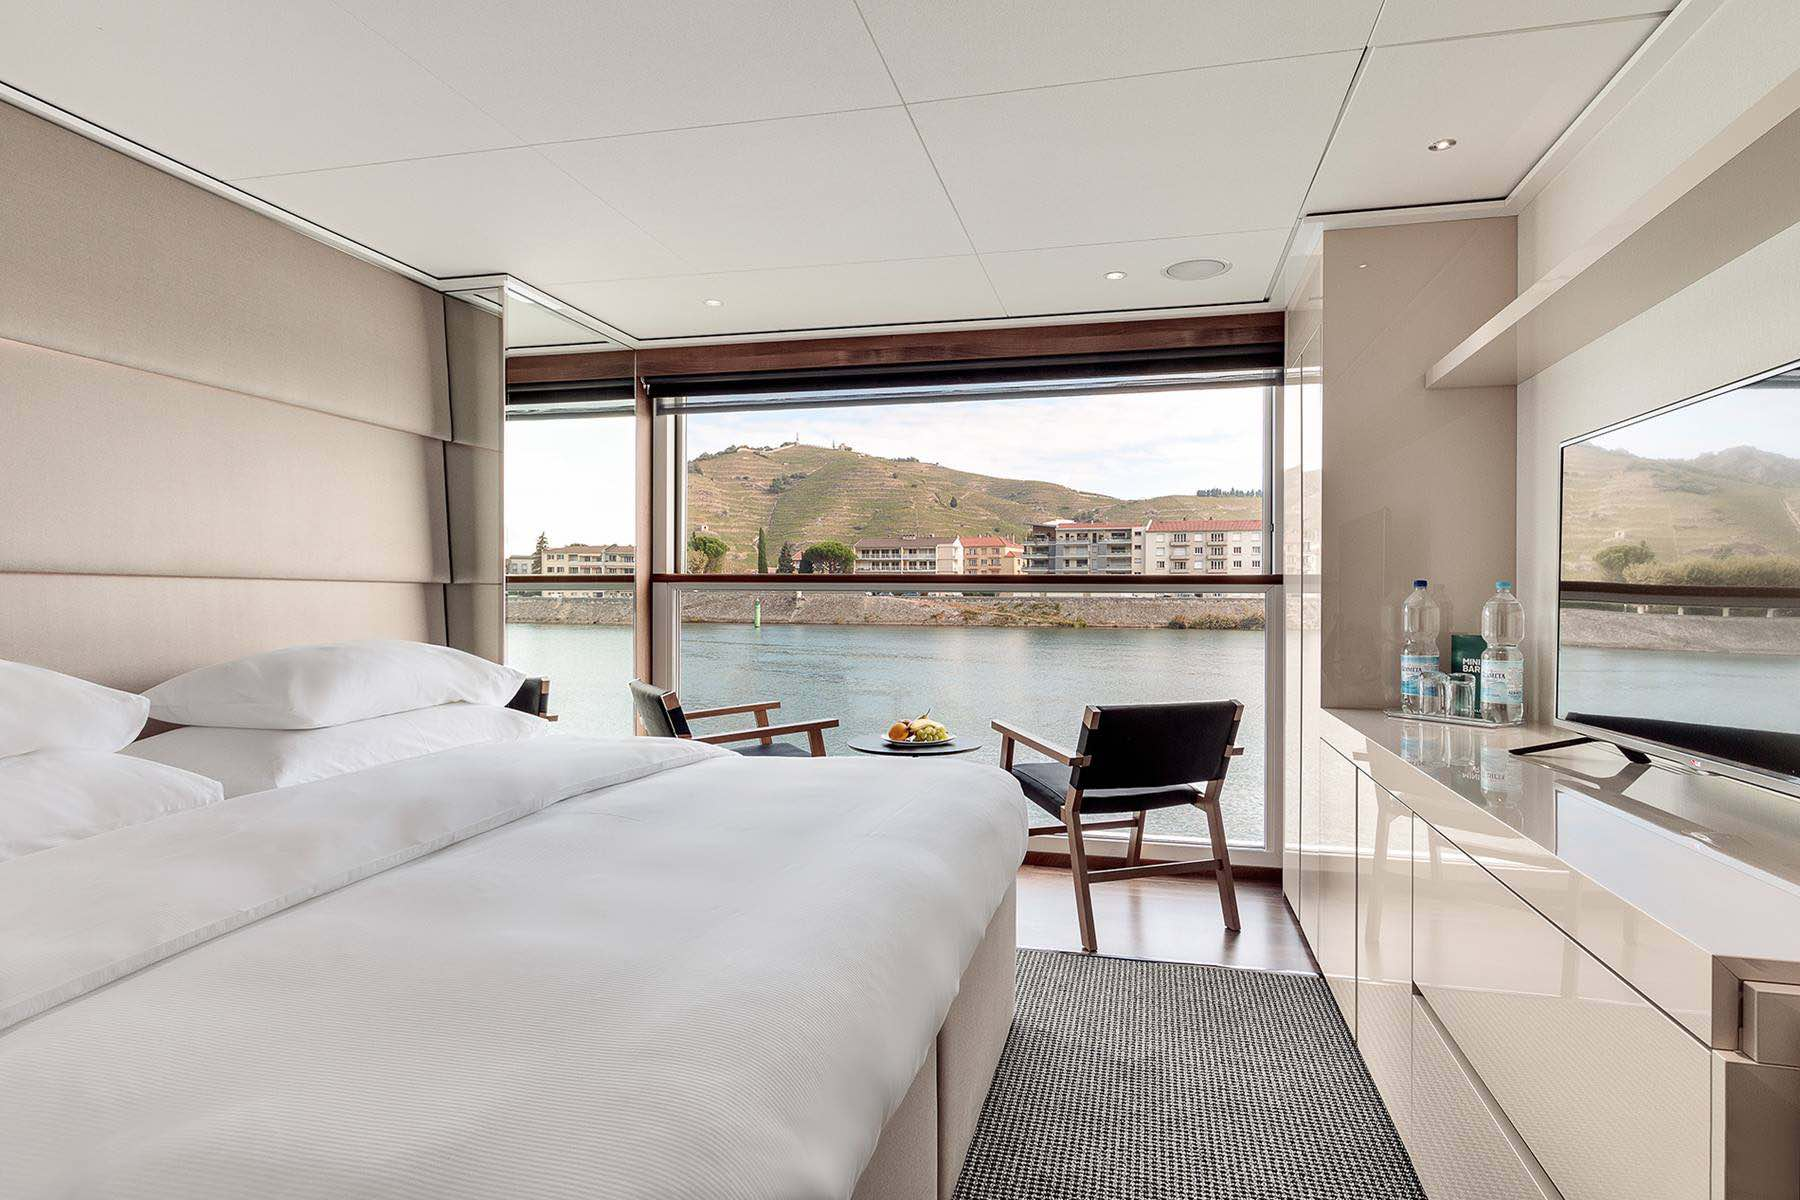 Luxury suite with river view aboard Rhone river cruise